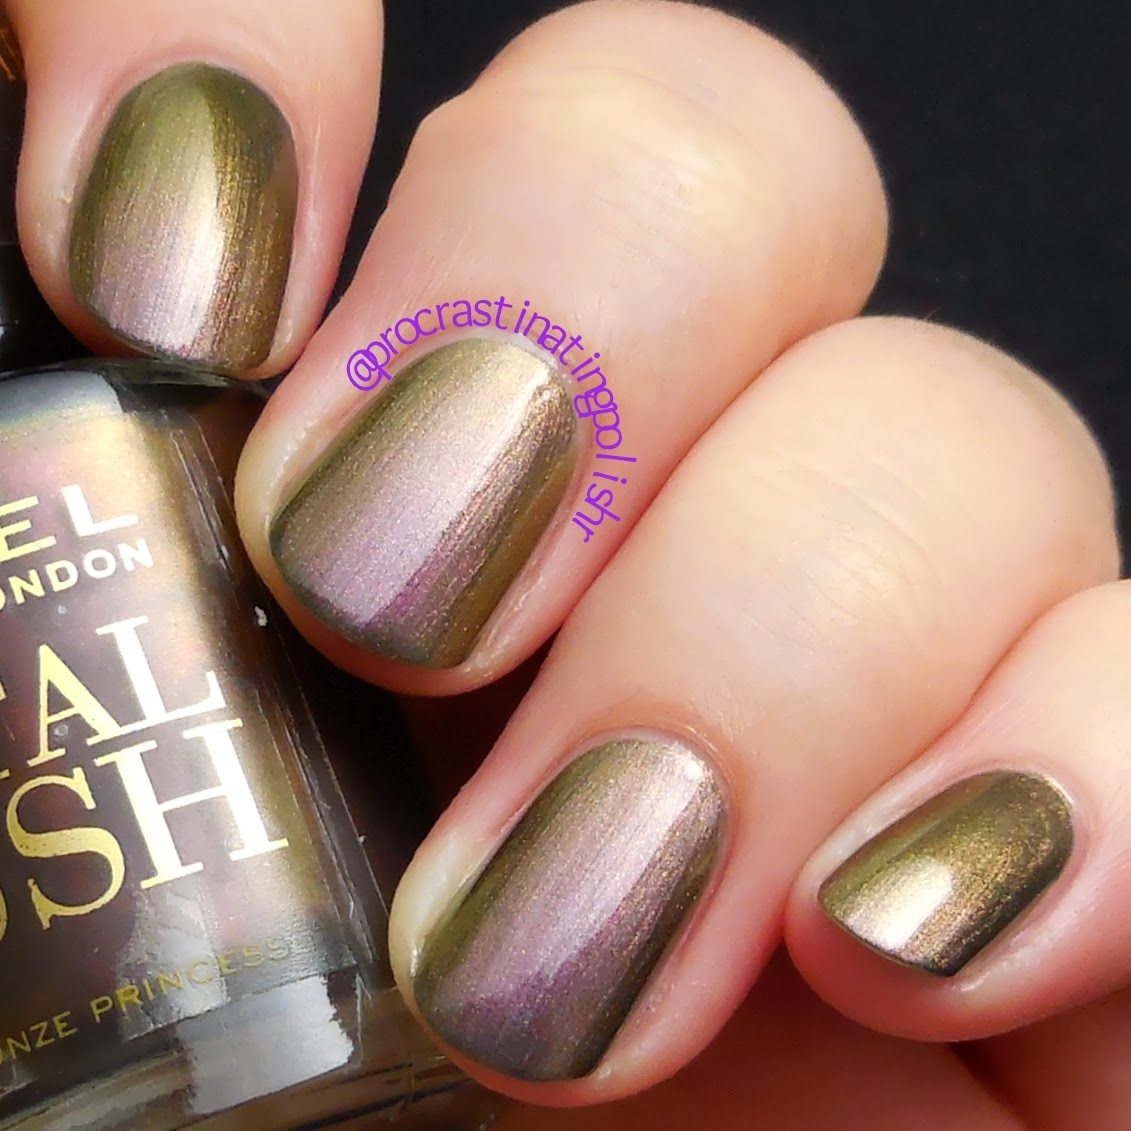 Rimmel - Bronze Princess - Metal Rush collection